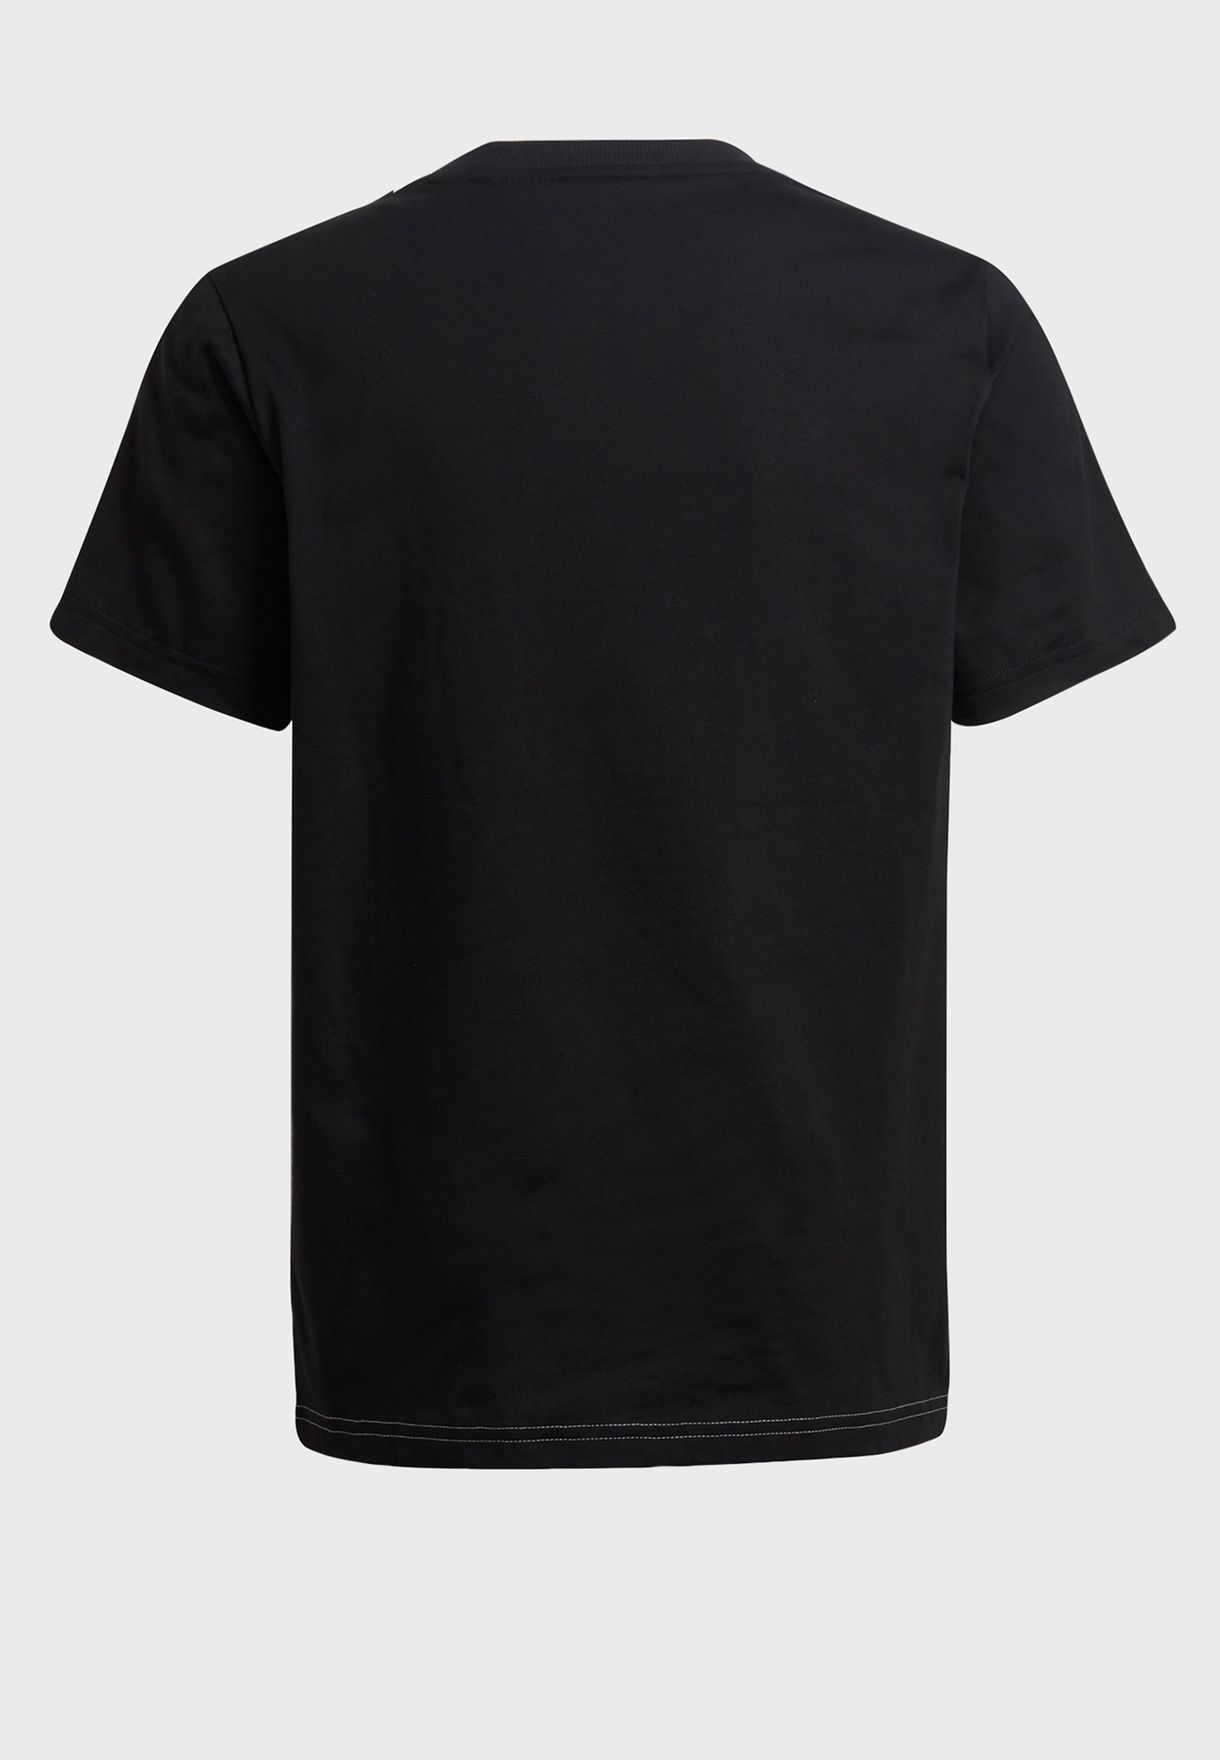 Youth Colour Block T-Shirt